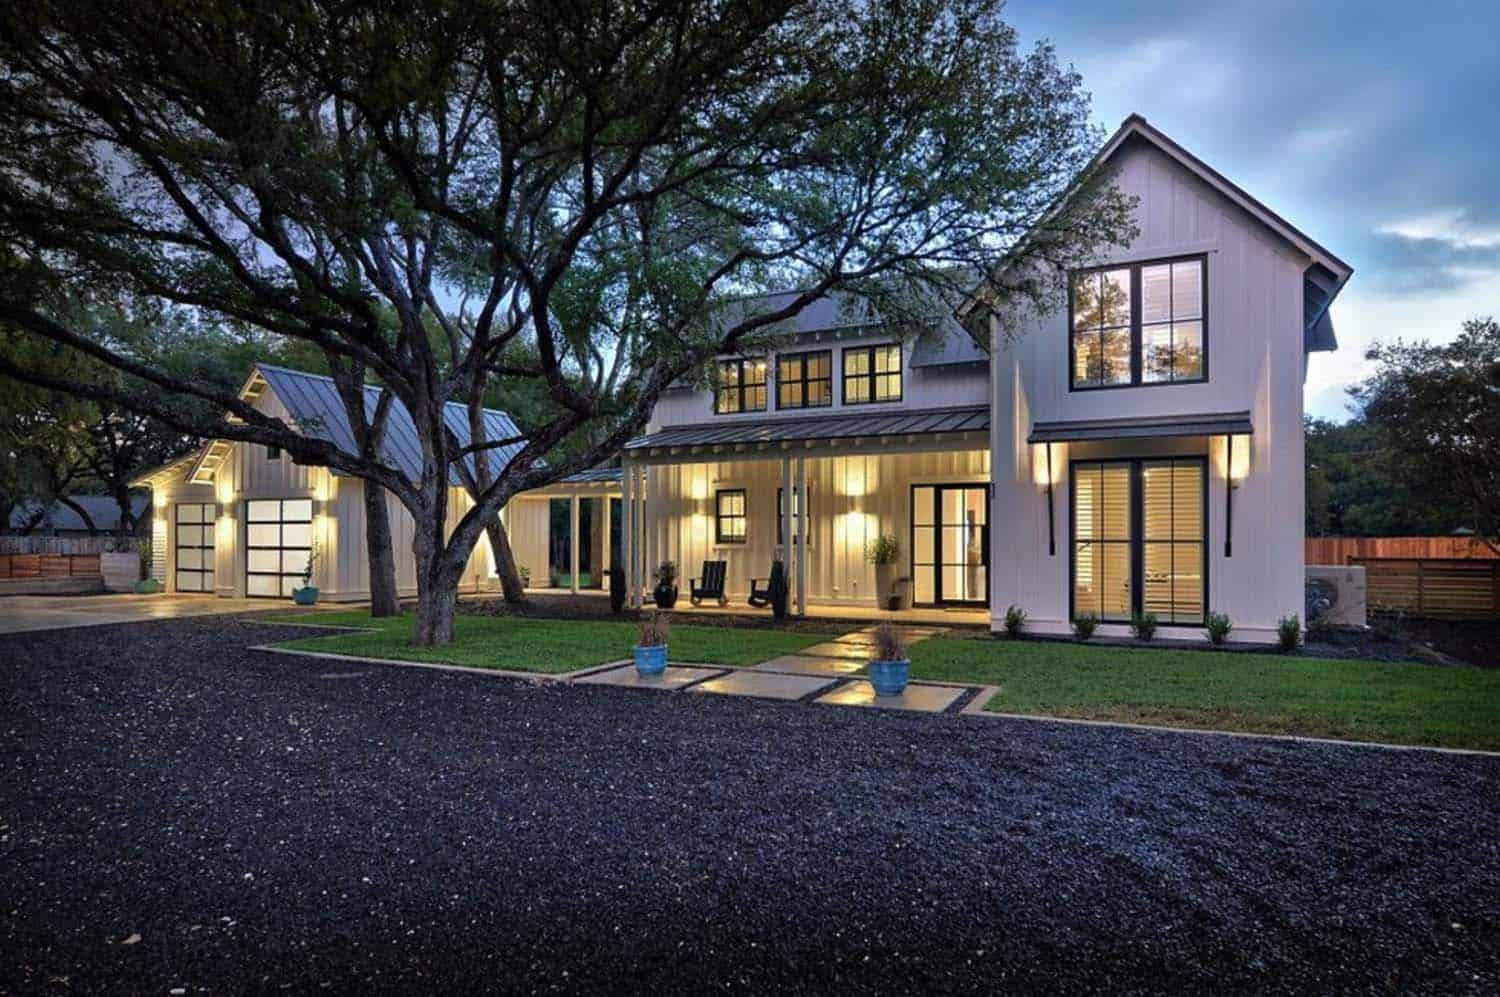 Modernized texas farmhouse filled with eye catching details for 2 story modern farmhouse